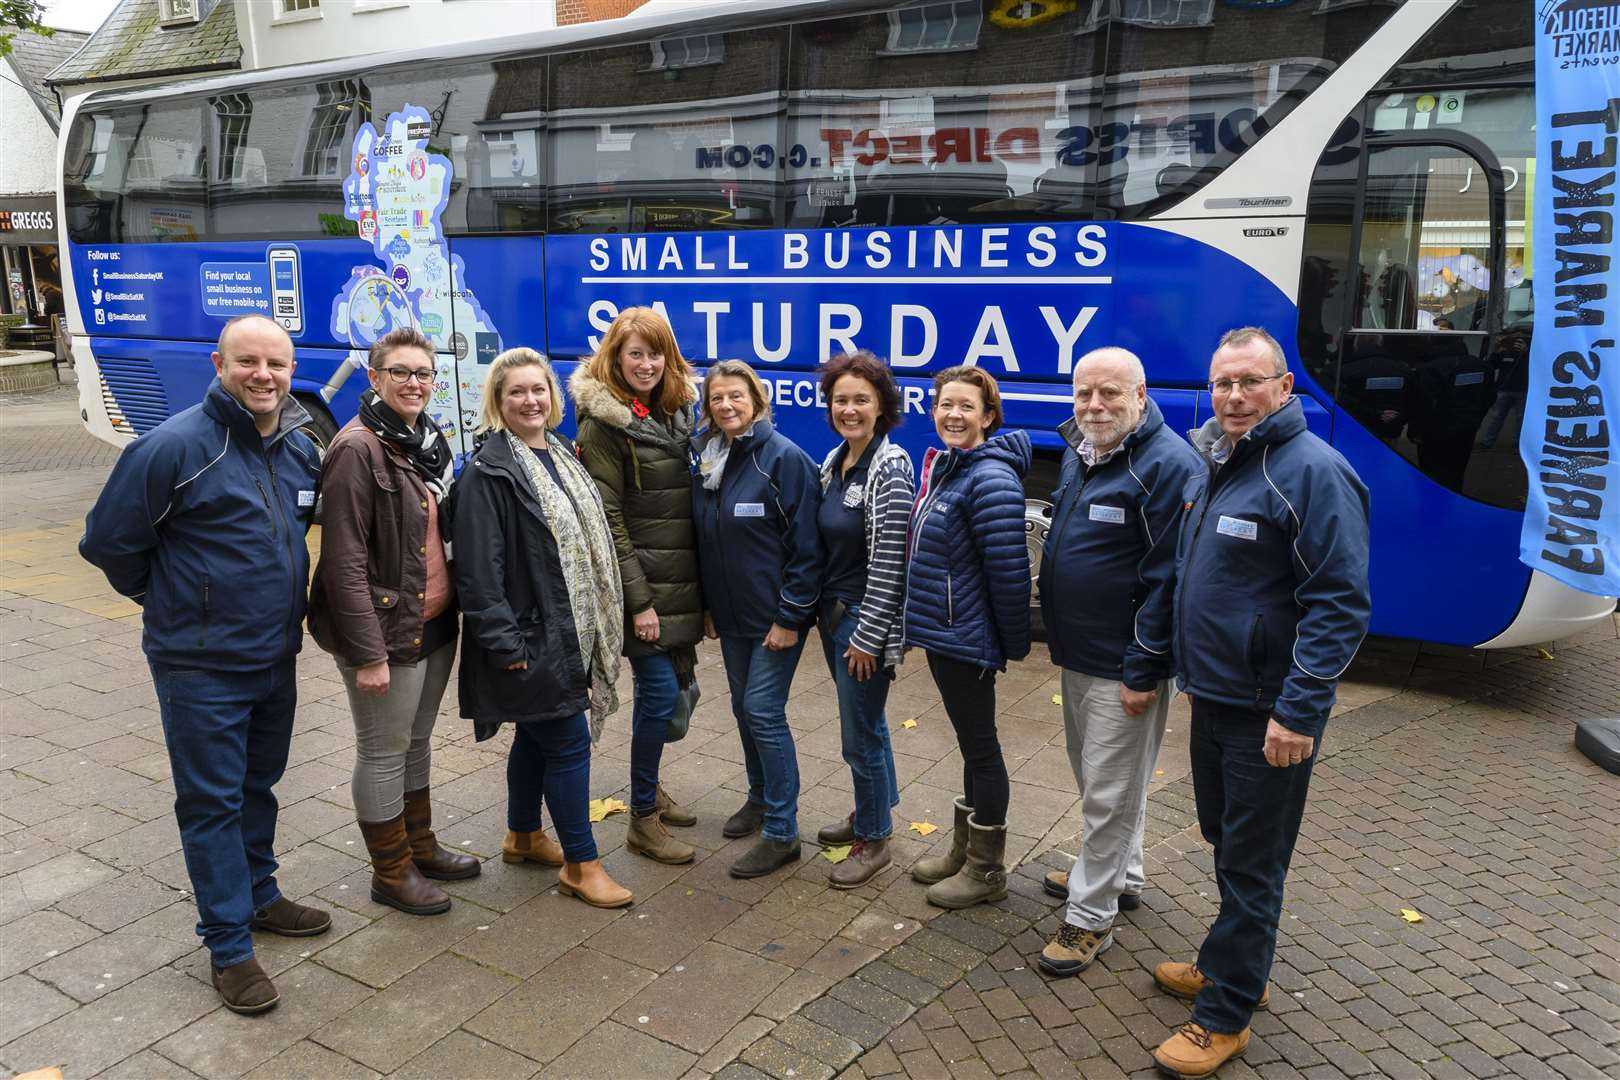 Bury St Edmunds, Suffolk, UK, 06 November 2018..Small Business Saturday bus in the Cornhill of Bury St Edmunds pictured are local business owners and volunteers of the Business Bus..Picture: Mark Bullimore Photography. (22208604)